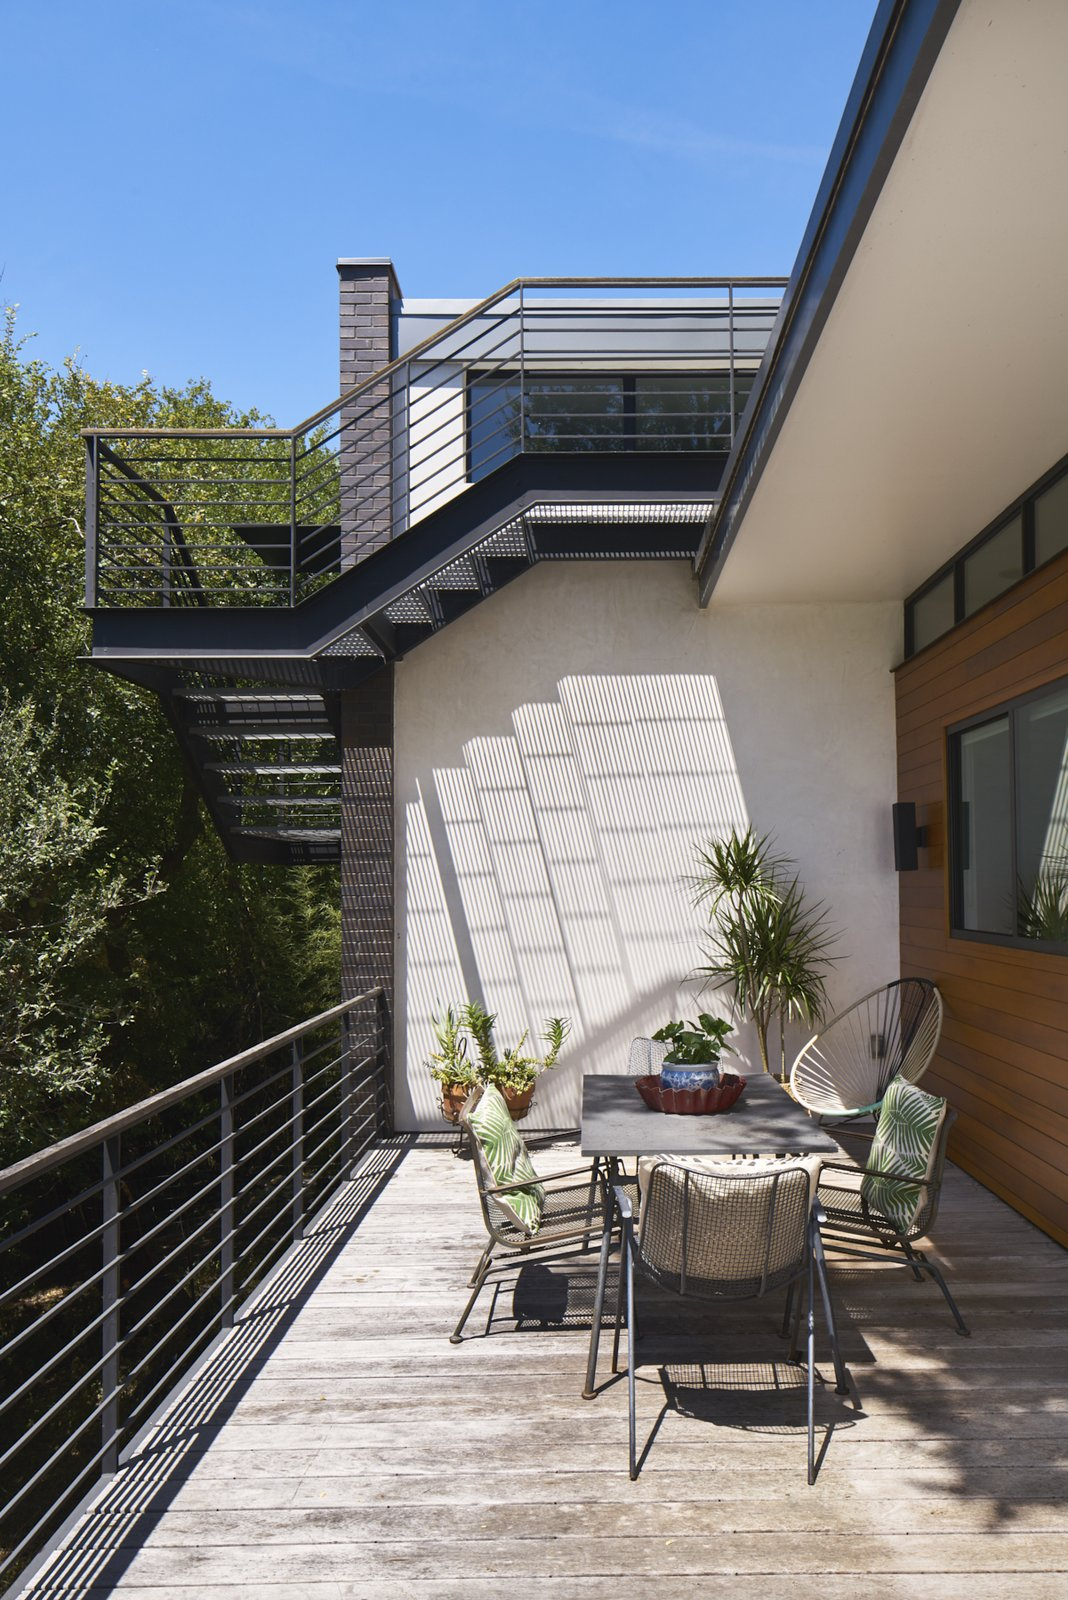 Cantilevered stair to roof deck overlooking patio.